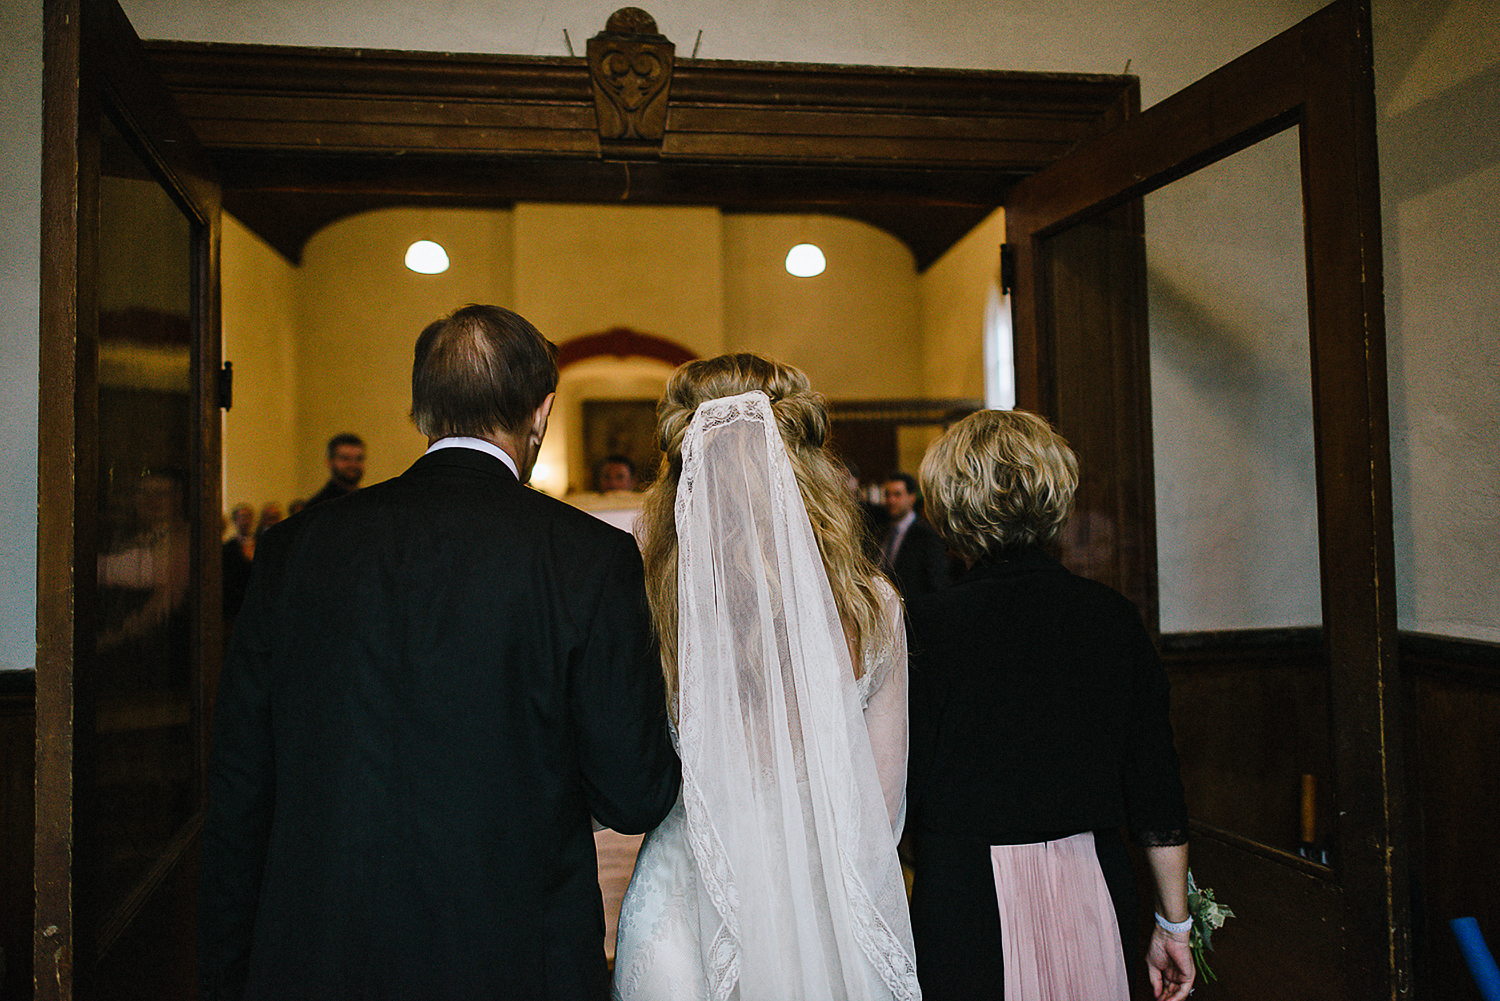 Best-Moody-Documentary-Wedding-Photography-Photojournalism-Vintage-Small-Town-Chapel-Wedding-Toronto-Ontario_Ceremony-Entrace-Bride-and-parents.jpg